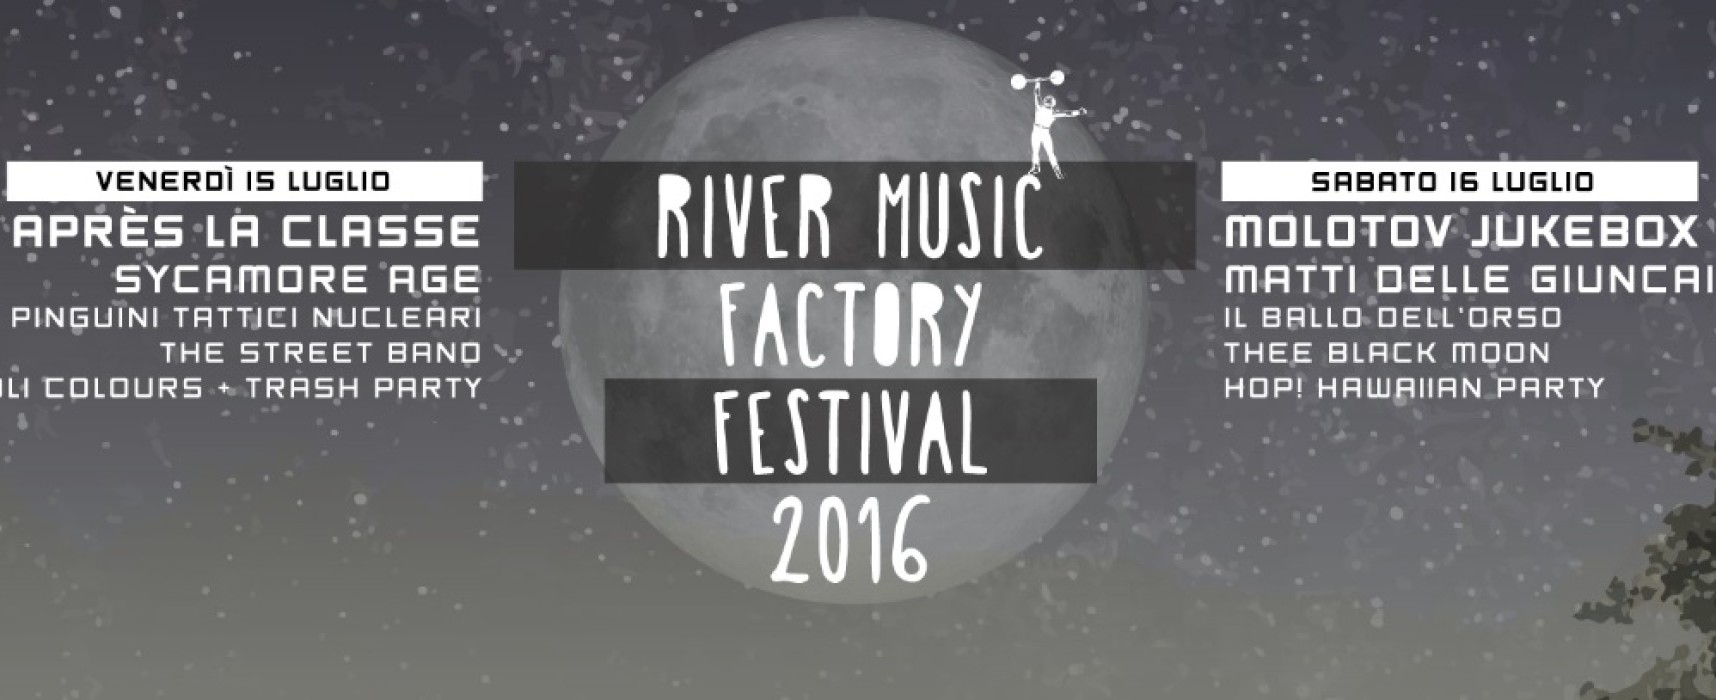 River Music Factory Festival 2016